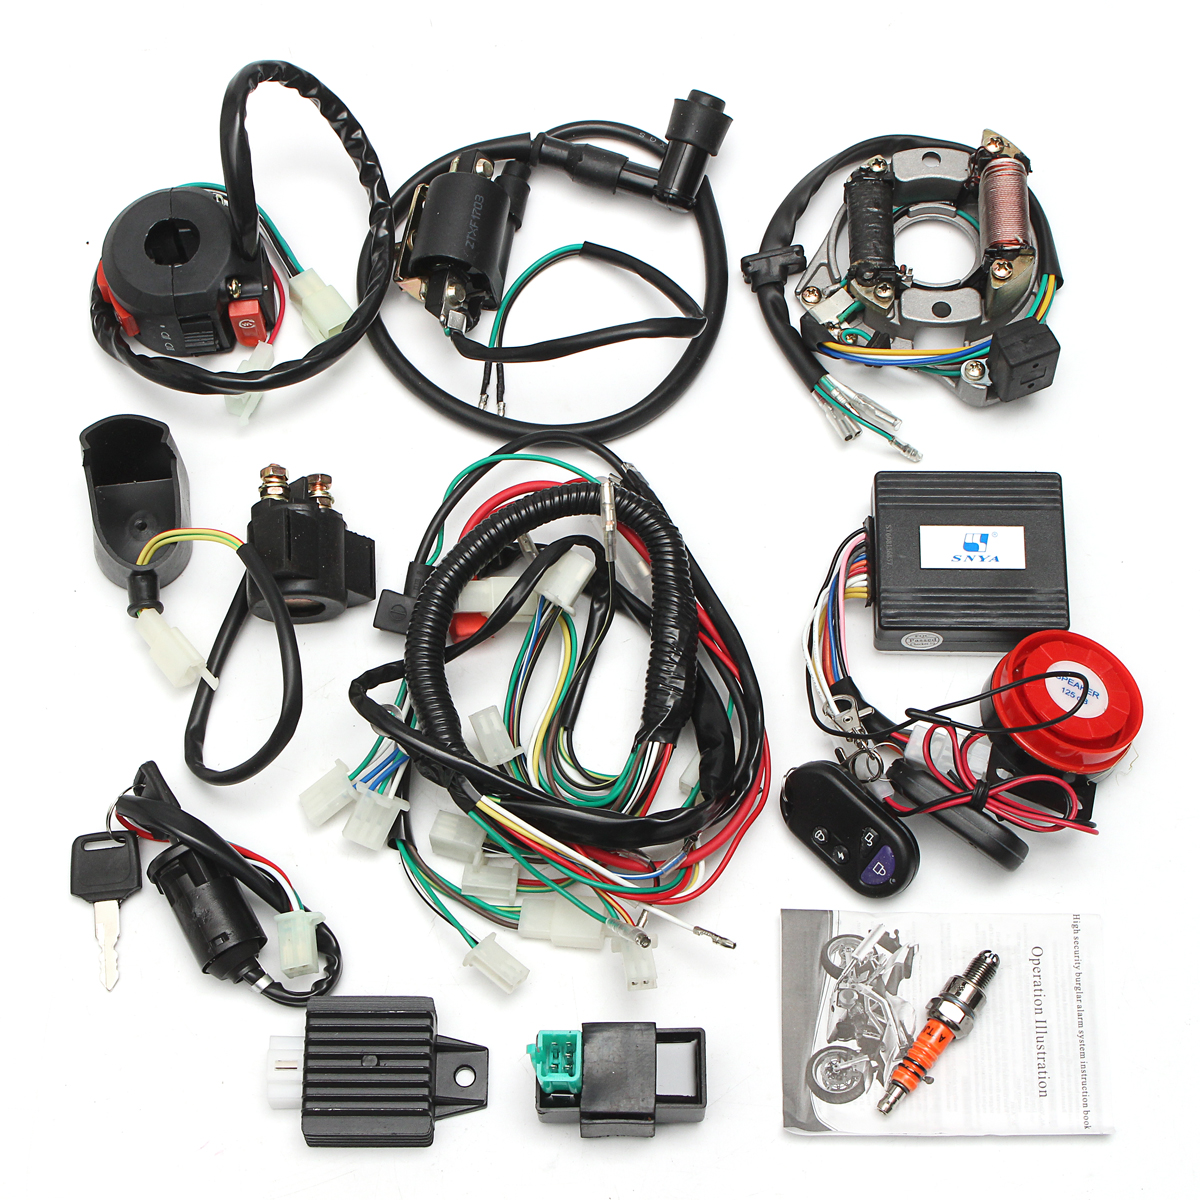 medium resolution of two holes full electrics wiring harness coil cdi 50cc 70cc 110cc 110 atv wiring harness key dash 110 atv wiring harness